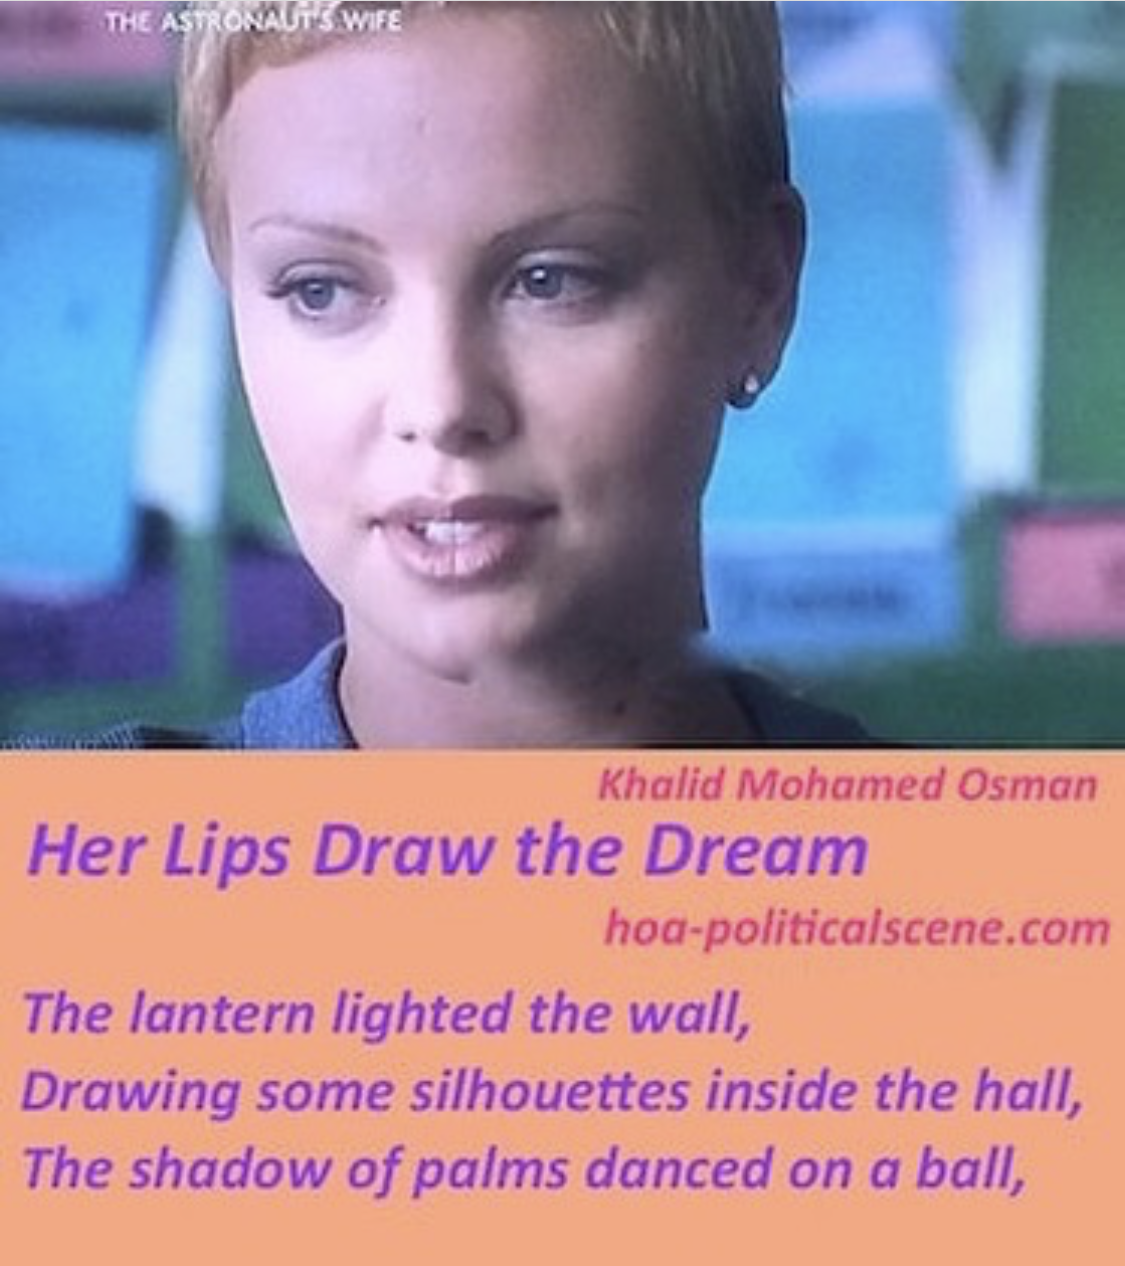 hoa-politicalscene.com/her-lips-draw-the-dream.html - Poetry snippet by poet Khalid Mohammed Osman